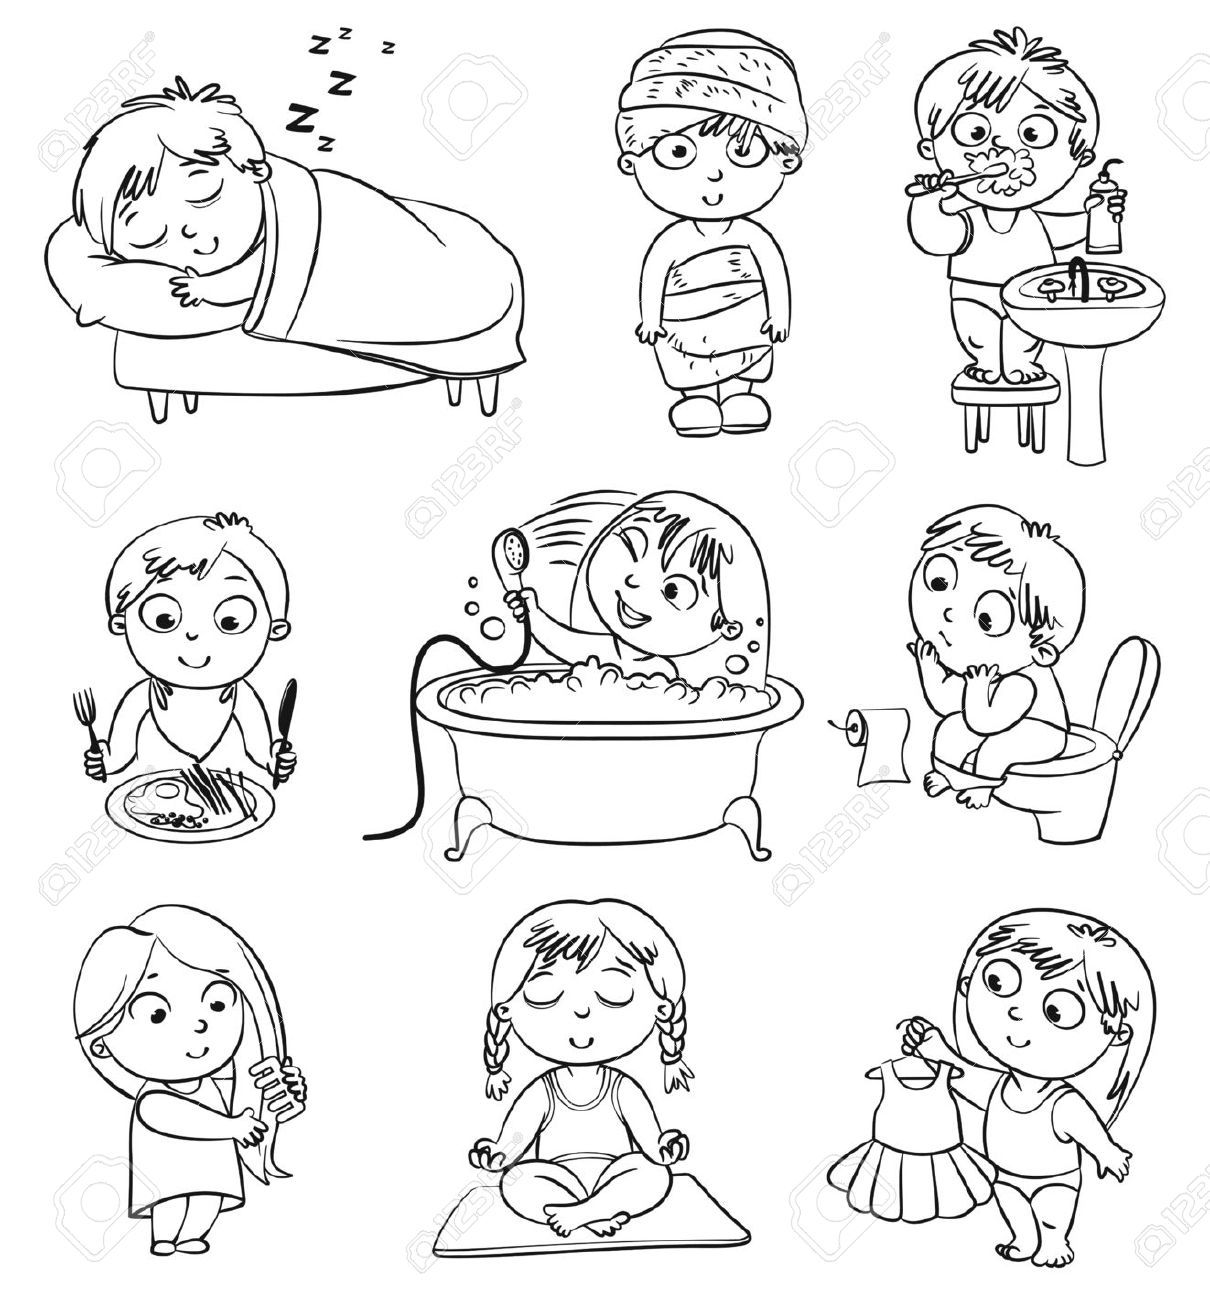 Activities clipart black and white. Good health habits cliparts